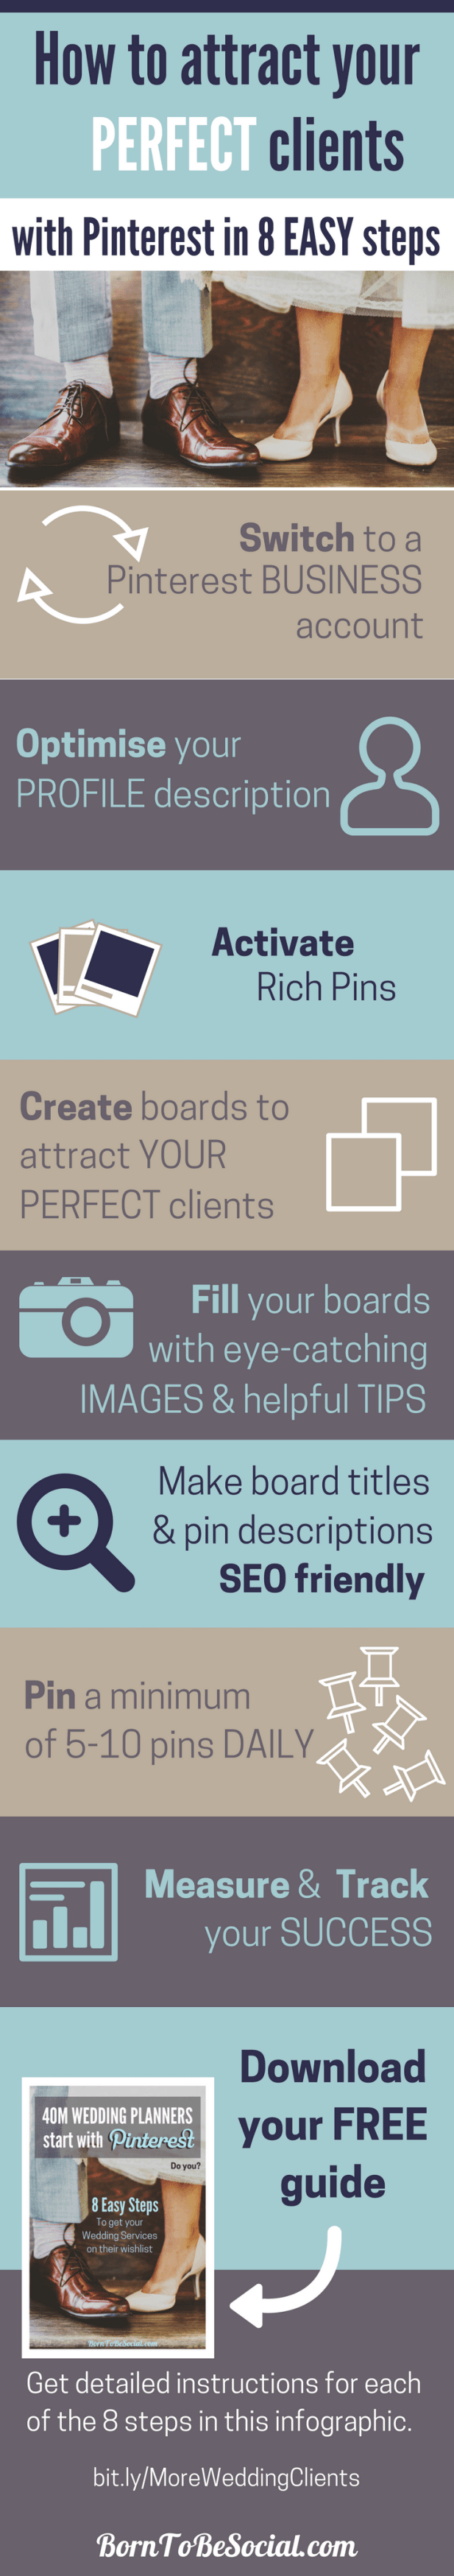 INFOGRAPHIC - HOW TO FIND WEDDING CLIENTS WITH PINTEREST for Hotel Wedding Venues, Wedding Planners & Photographers - 8-Step Checklist & Action Plan. Your perfect clients spend a LOT of time on Pinterest planning their perfect wedding and wedding reception, but are they finding their way to the wedding services on your website? |via @BornToBeSocial, Pinterest Marketing & Consulting